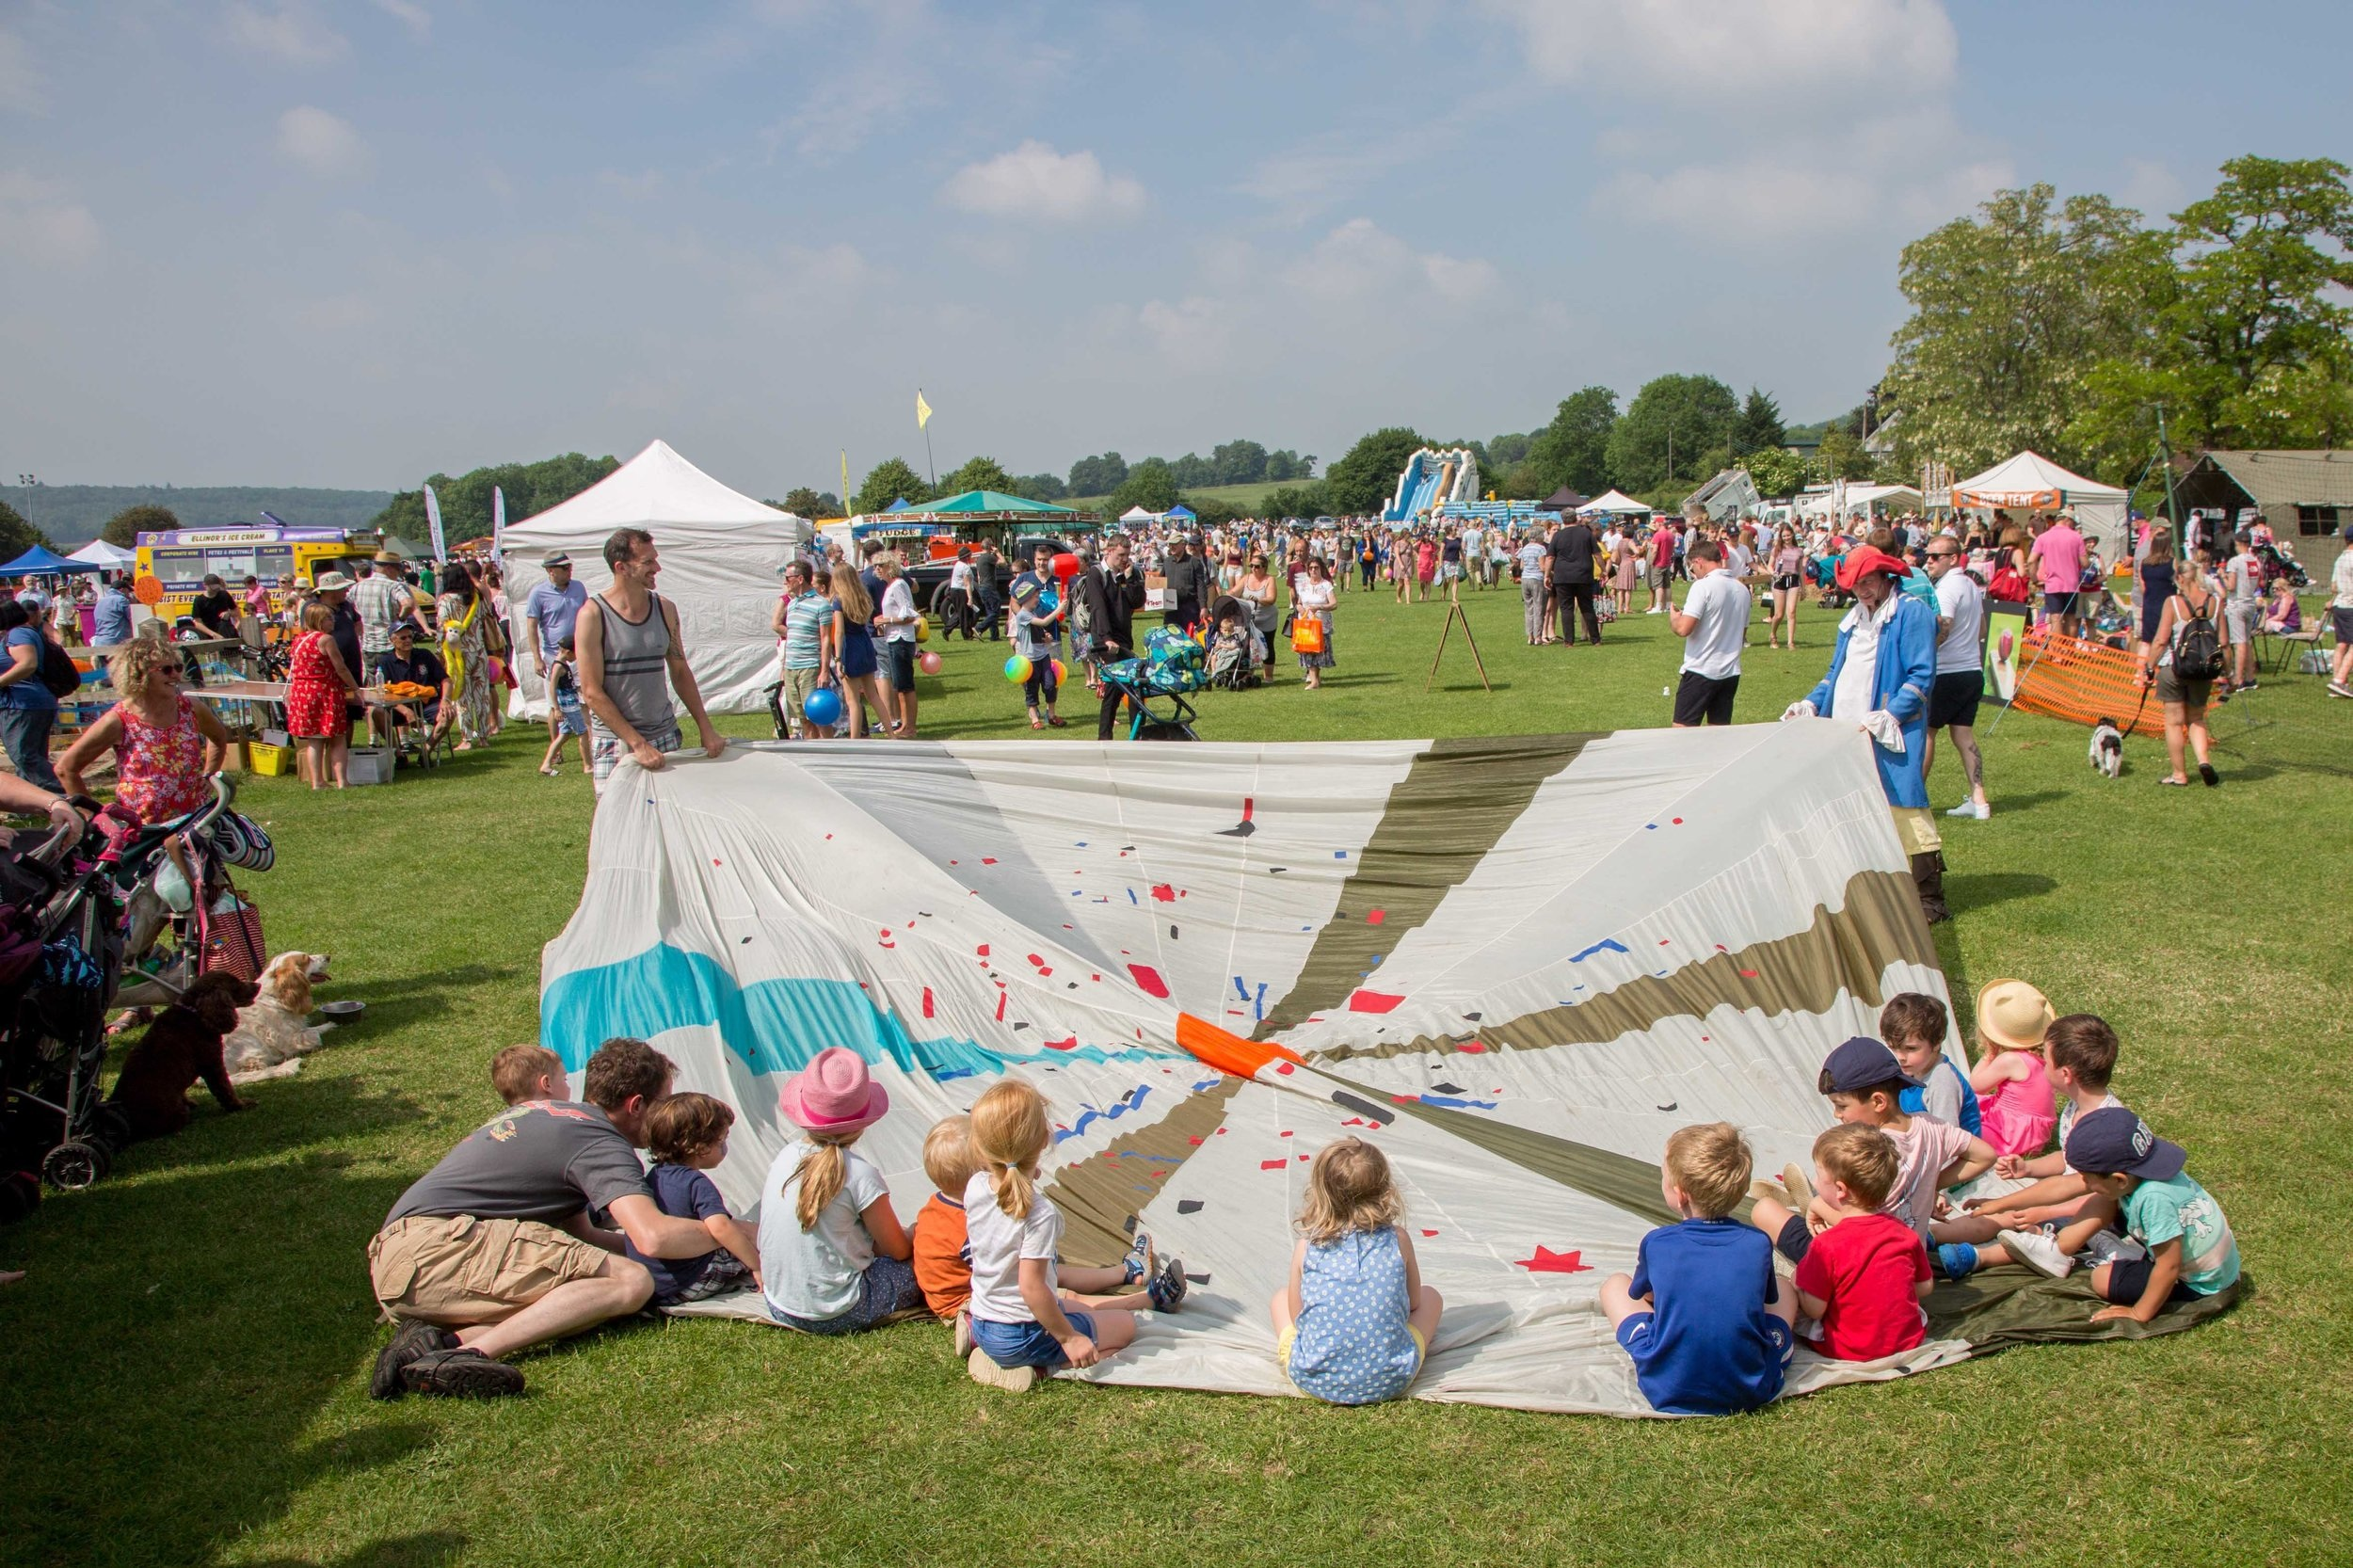 Attractions - The fete is a celebration of the village with stalls from the local societies and artisans, offering great food and drink, all day music and loads of fun rides and attractions for the kids.